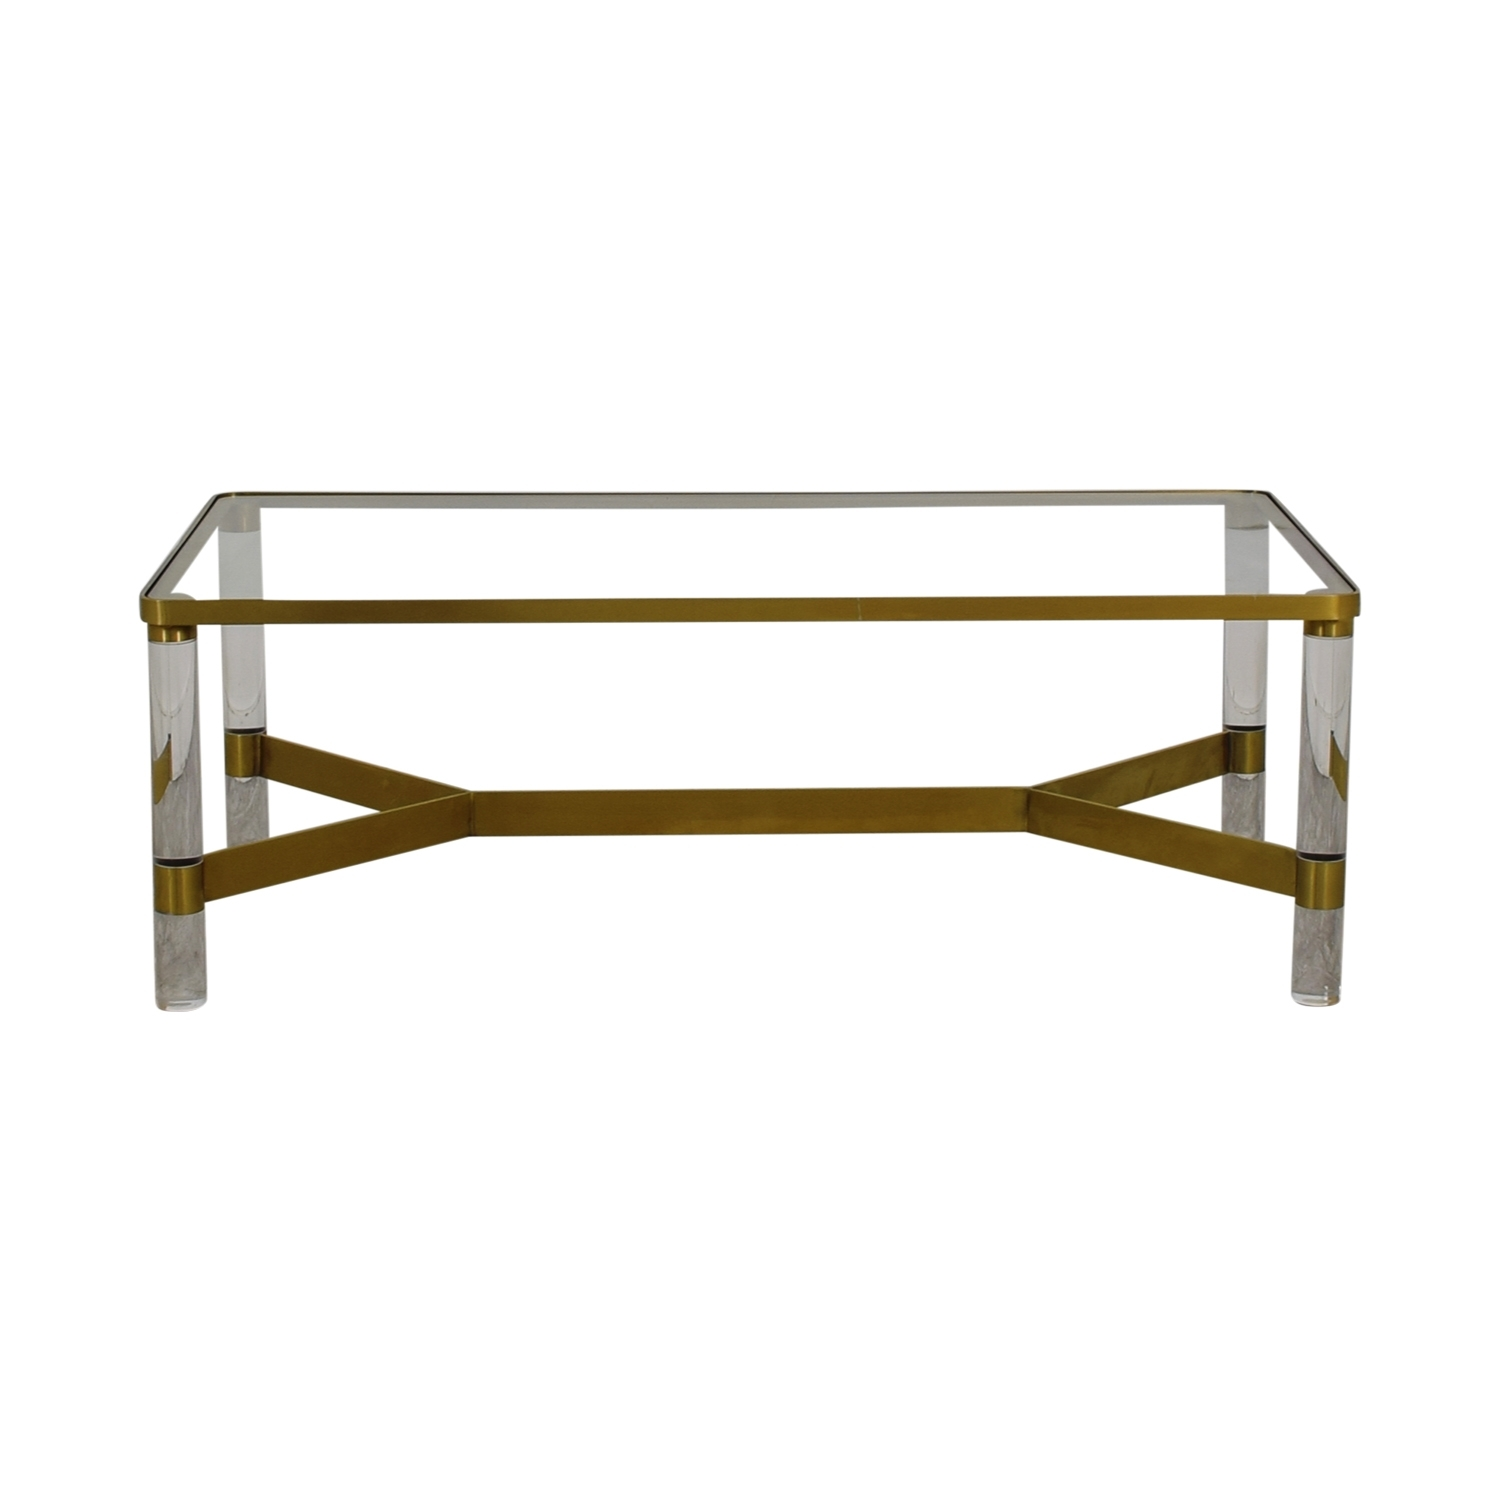 67% Off - Anthropologie Anthropologie Oscarine Glass Acrylic & Brass throughout Acrylic & Brushed Brass Coffee Tables (Image 1 of 20)